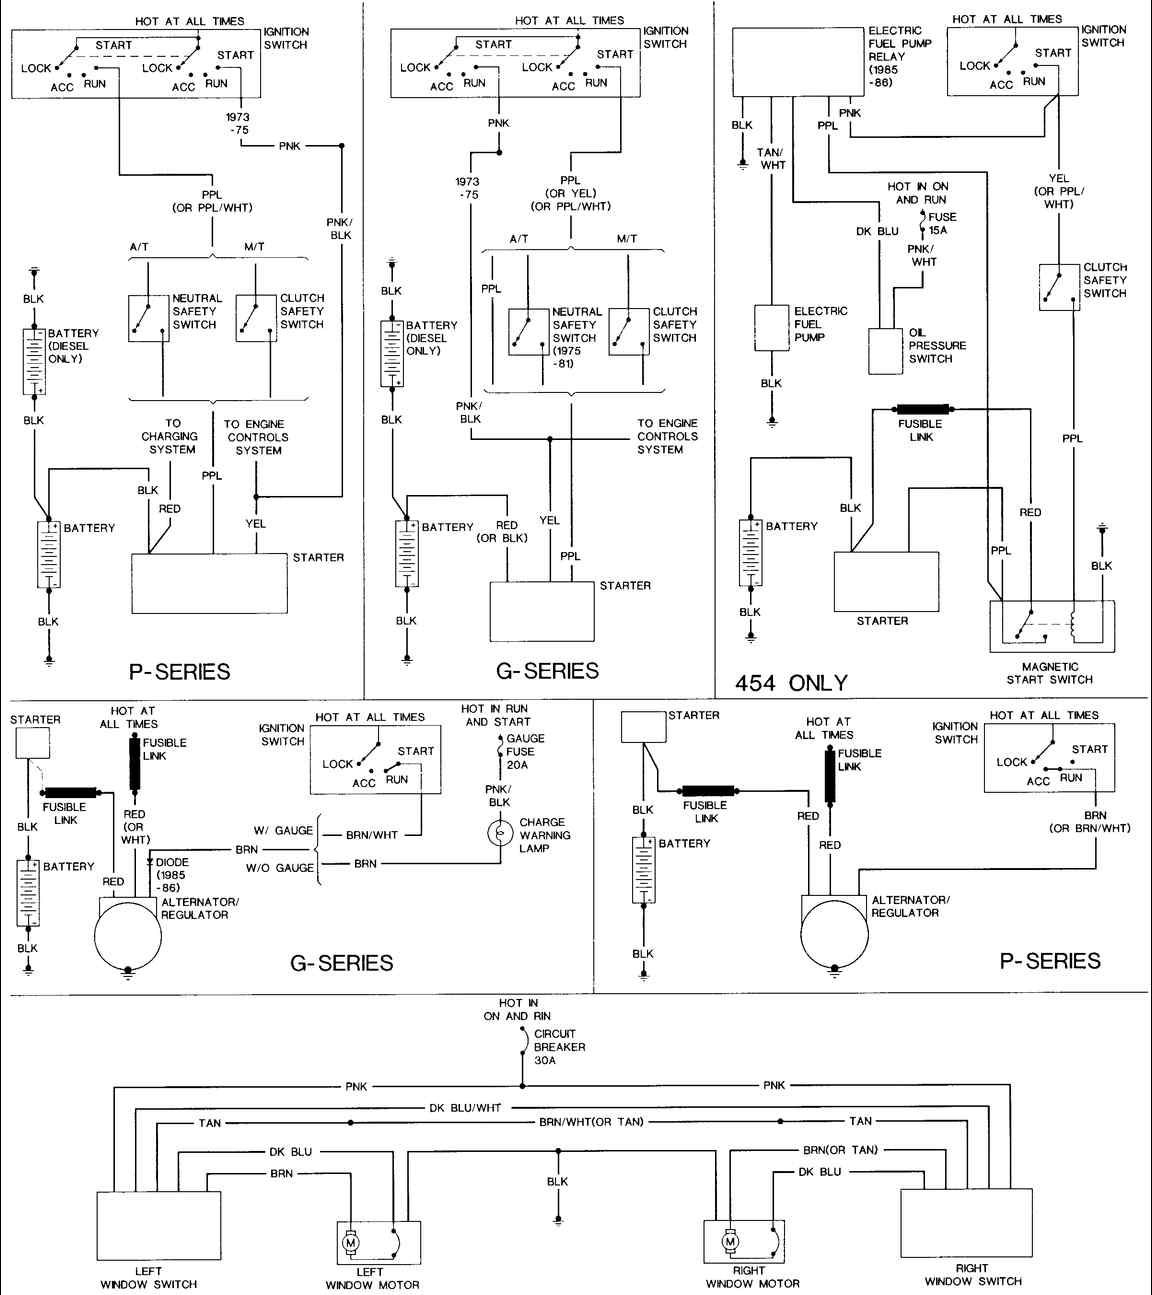 0c73623a181dc376dbb4777e2029d285 85 chevy truck wiring diagram 85 chevy van the steering column 1975 c10 wiring diagram at gsmx.co